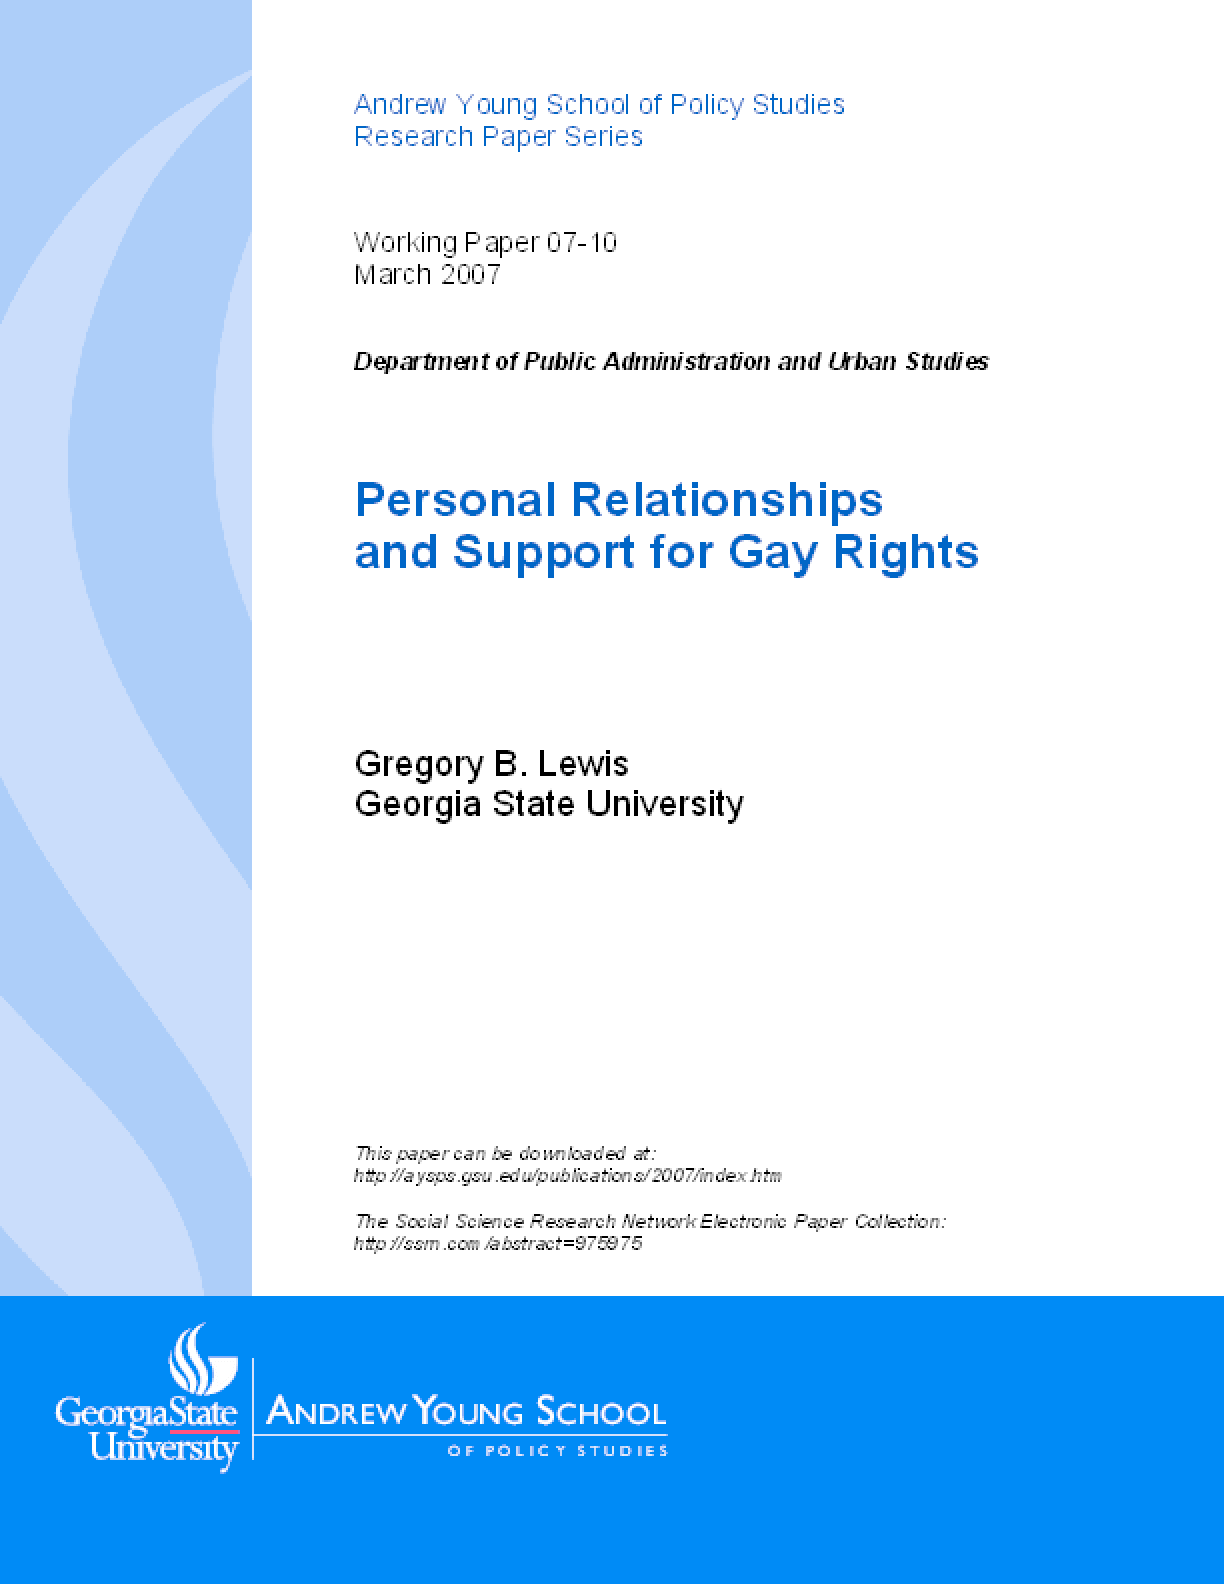 Personal Relationships and Support for Gay Rights